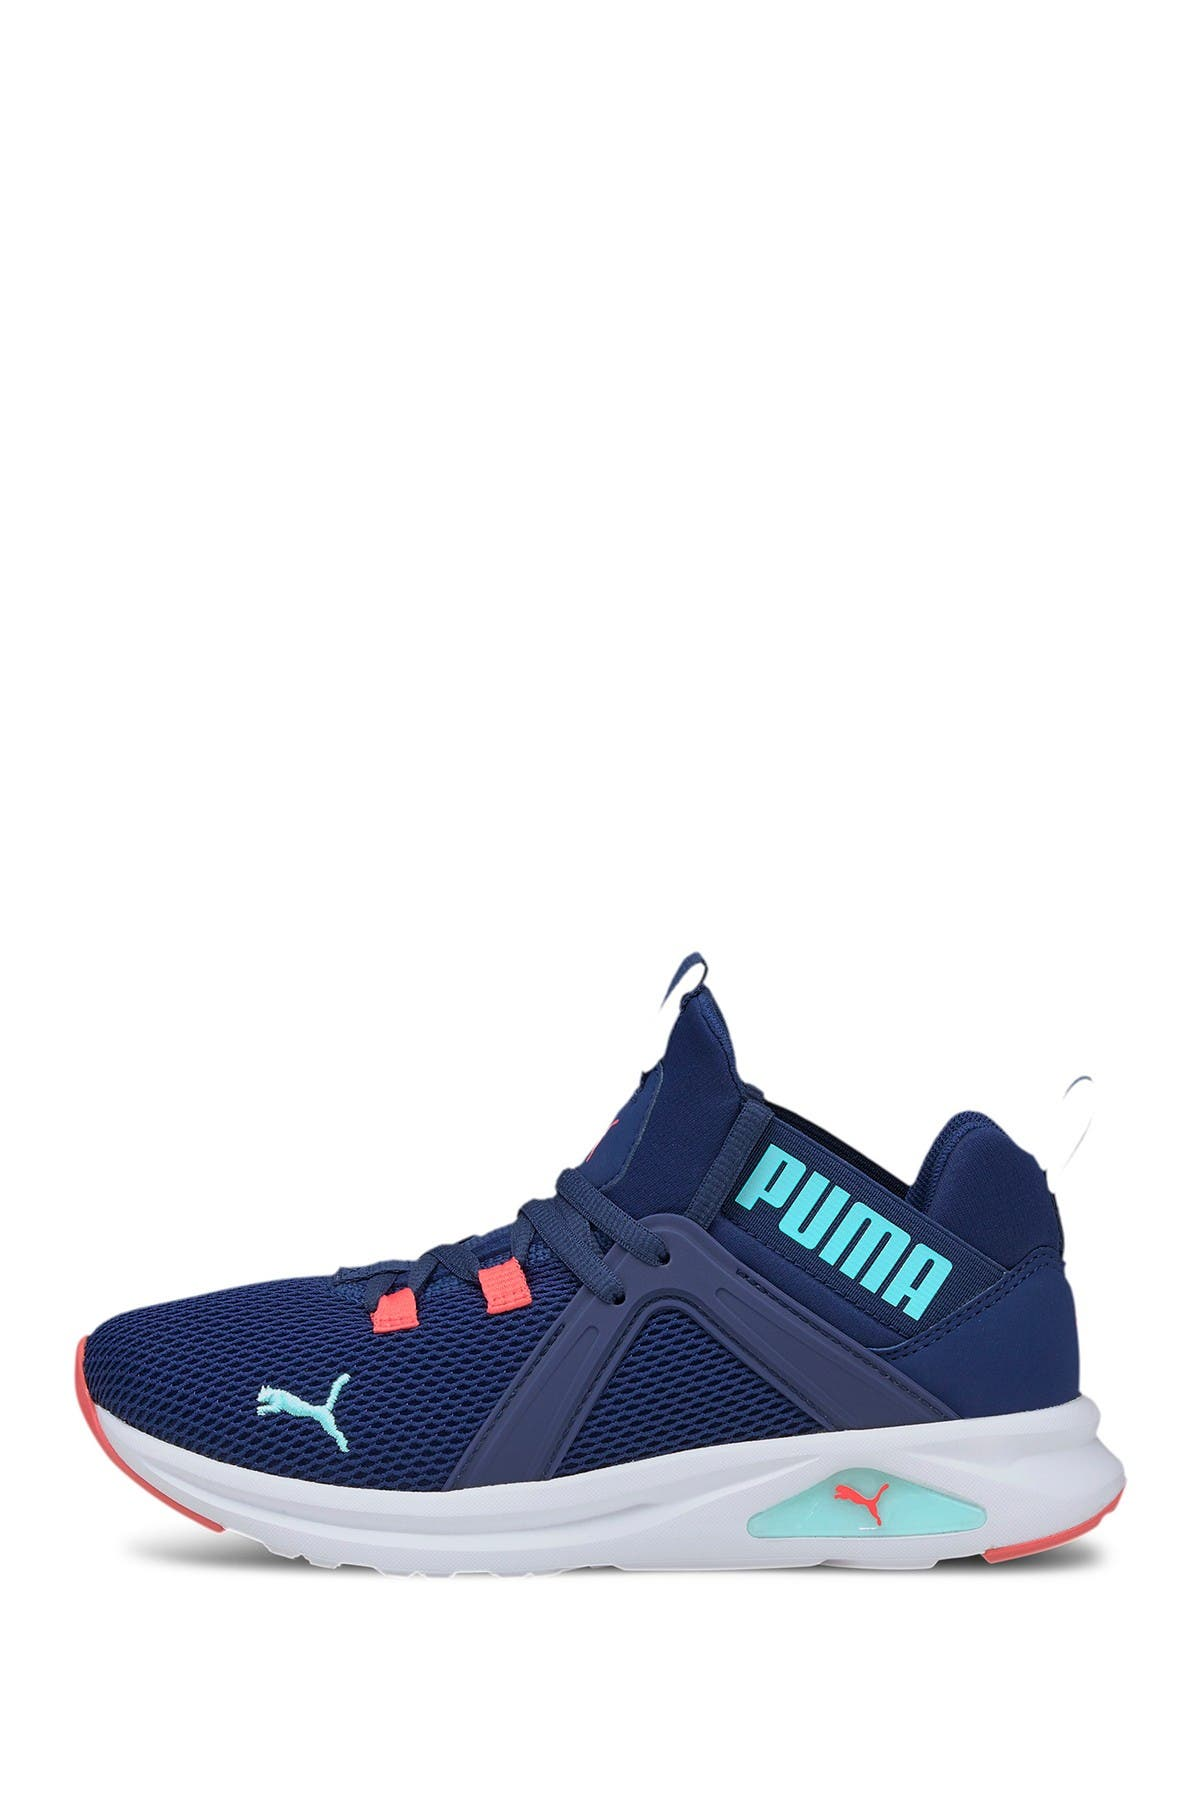 Image of PUMA Enzo 2 Sparkle Sneaker